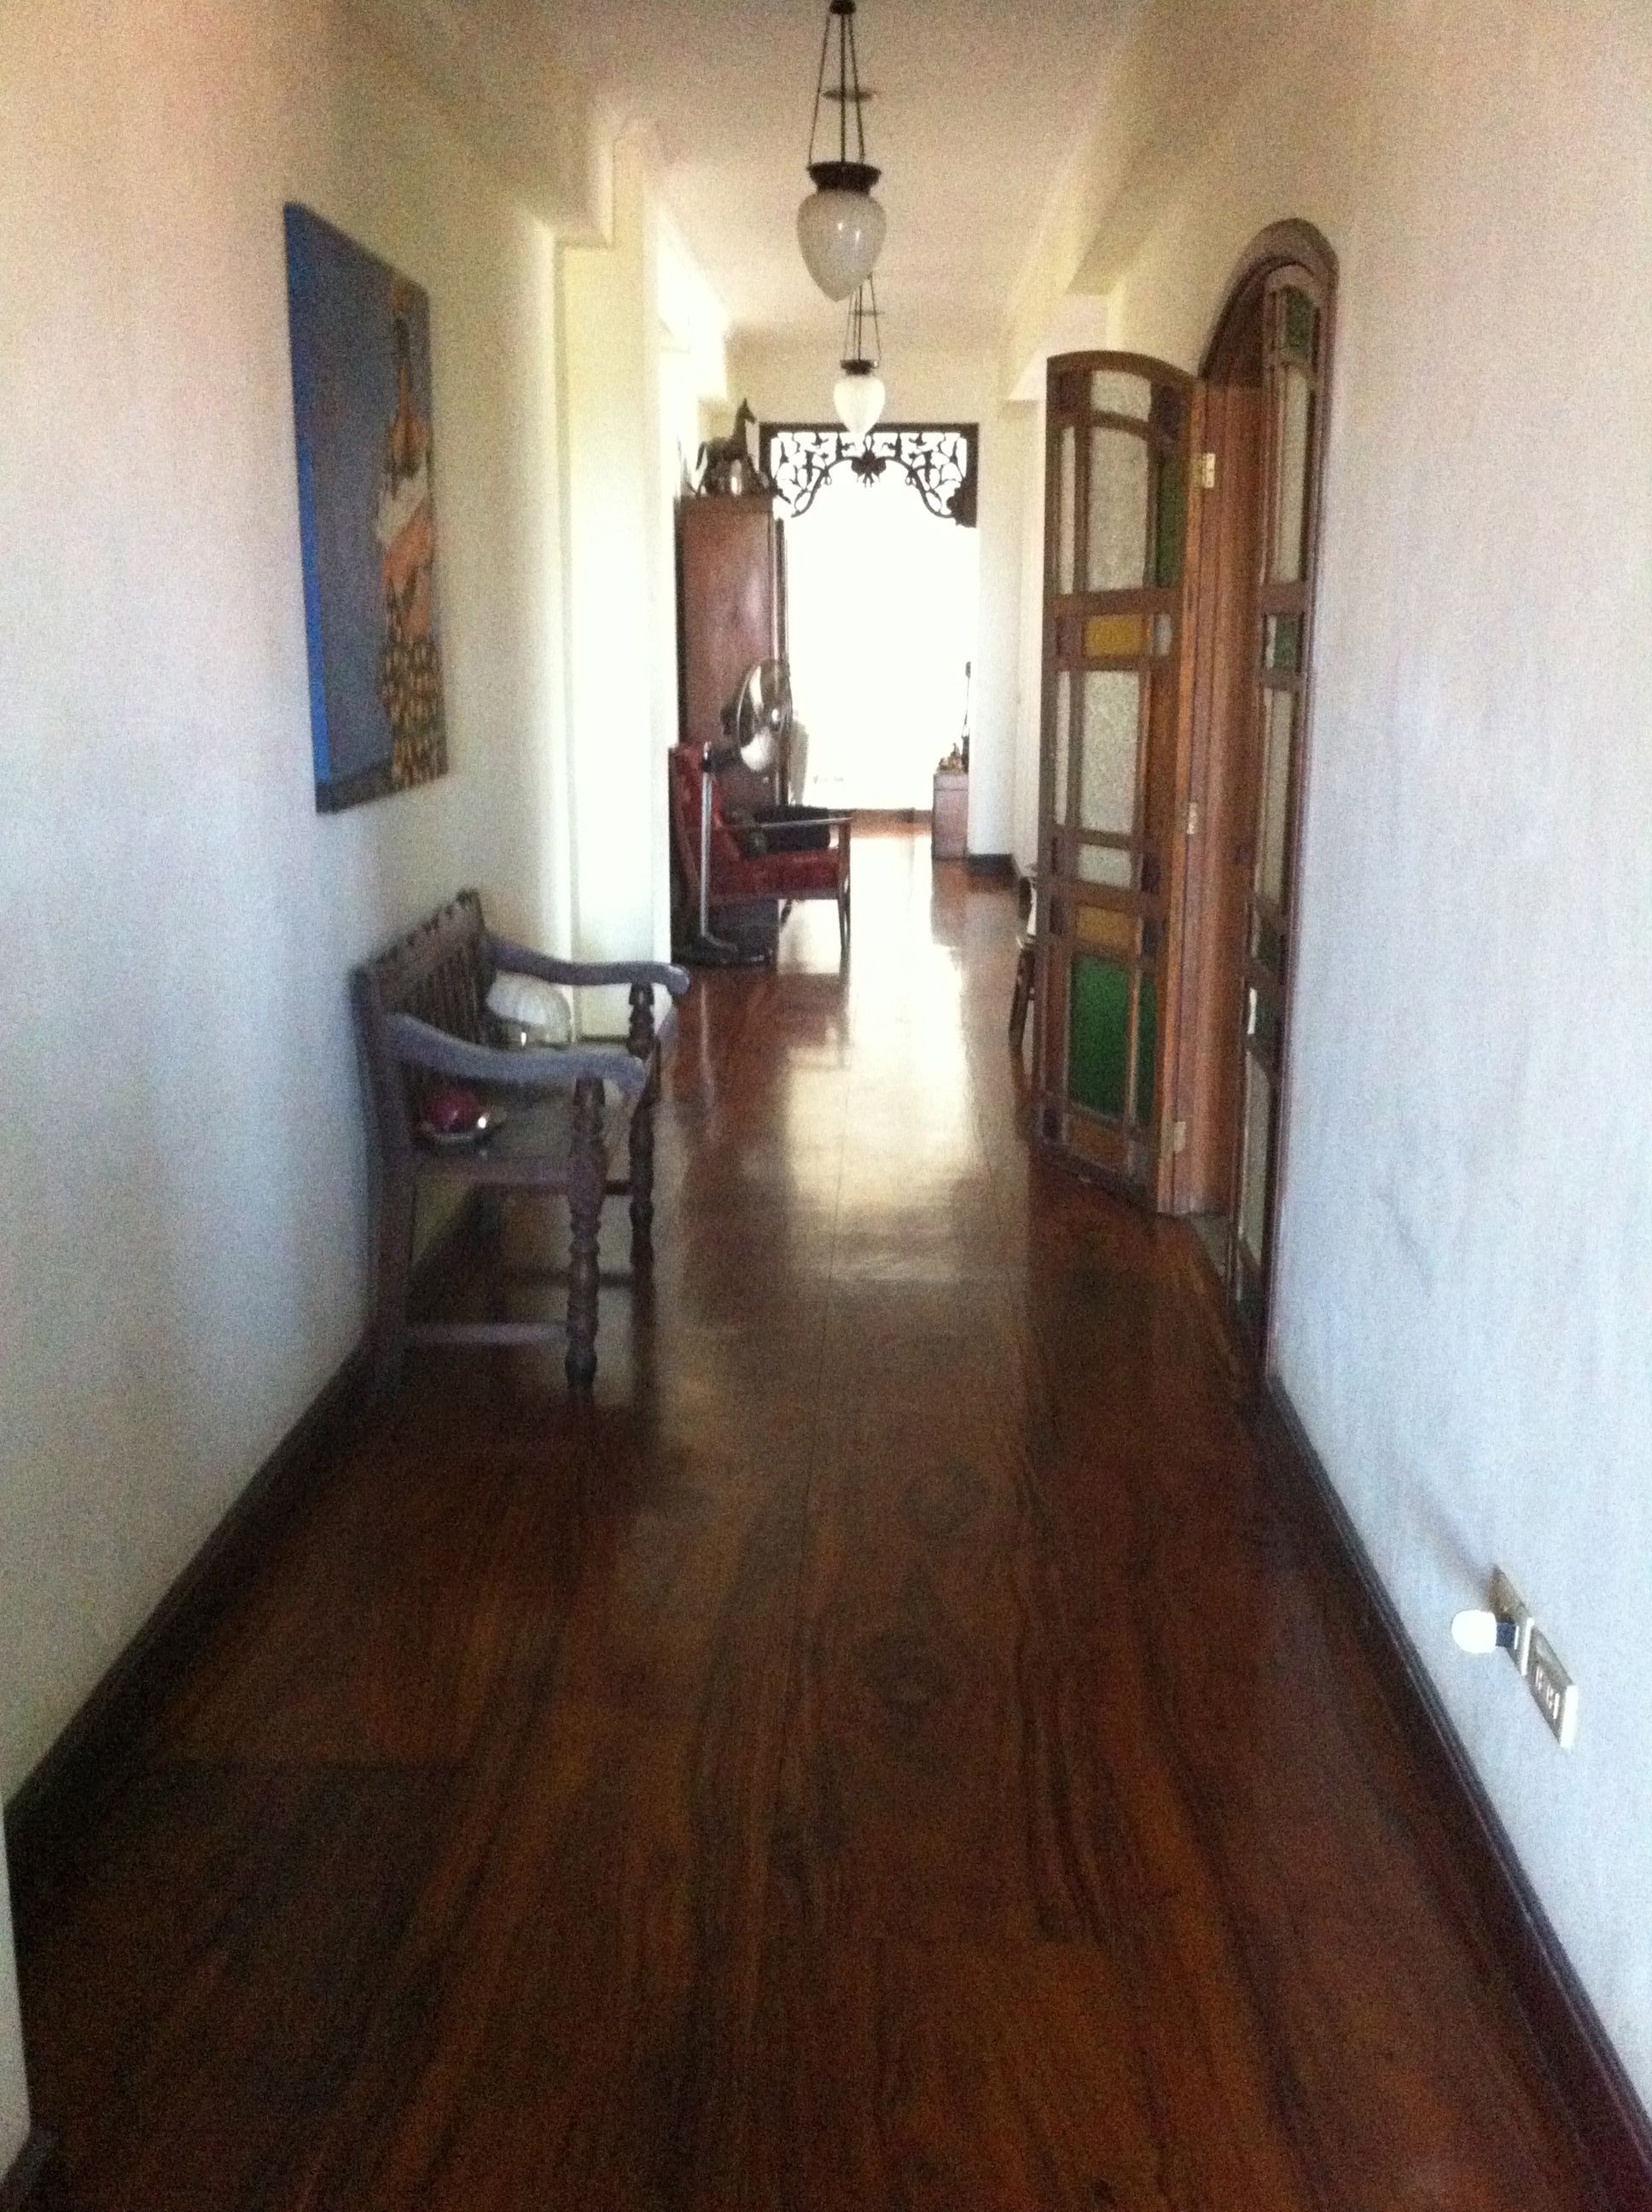 can you put hardwood floors on concrete of the same plank hardwood floors in the connecting 2nd floor corridor intended for the same plank hardwood floors in the connecting 2nd floor corridor